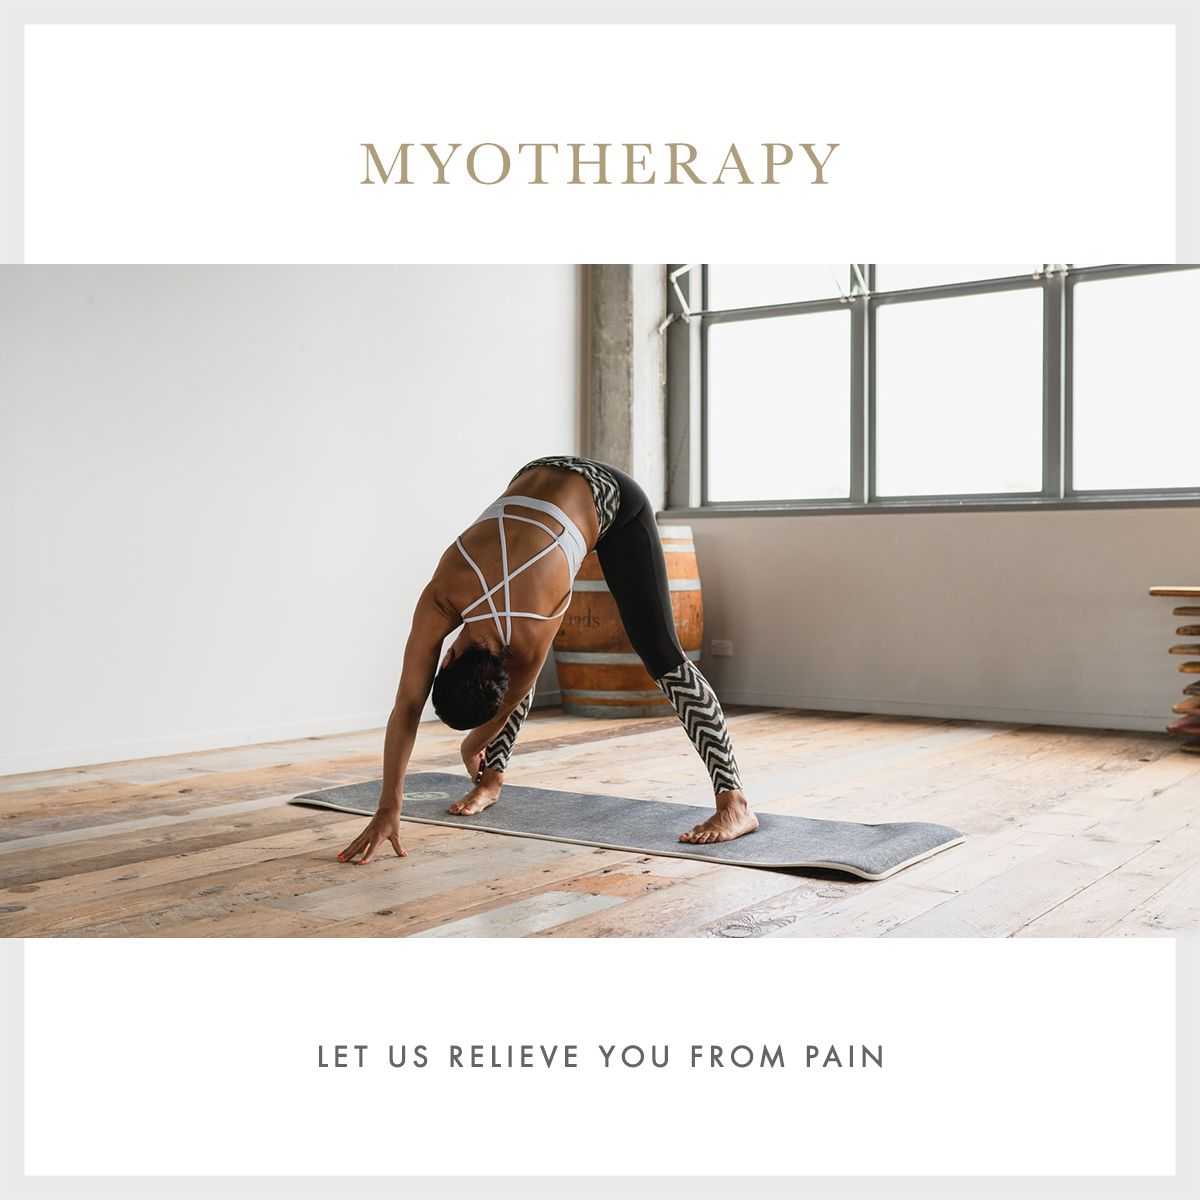 Pin on Myotherapy [Sports Injury & Pain Relief]